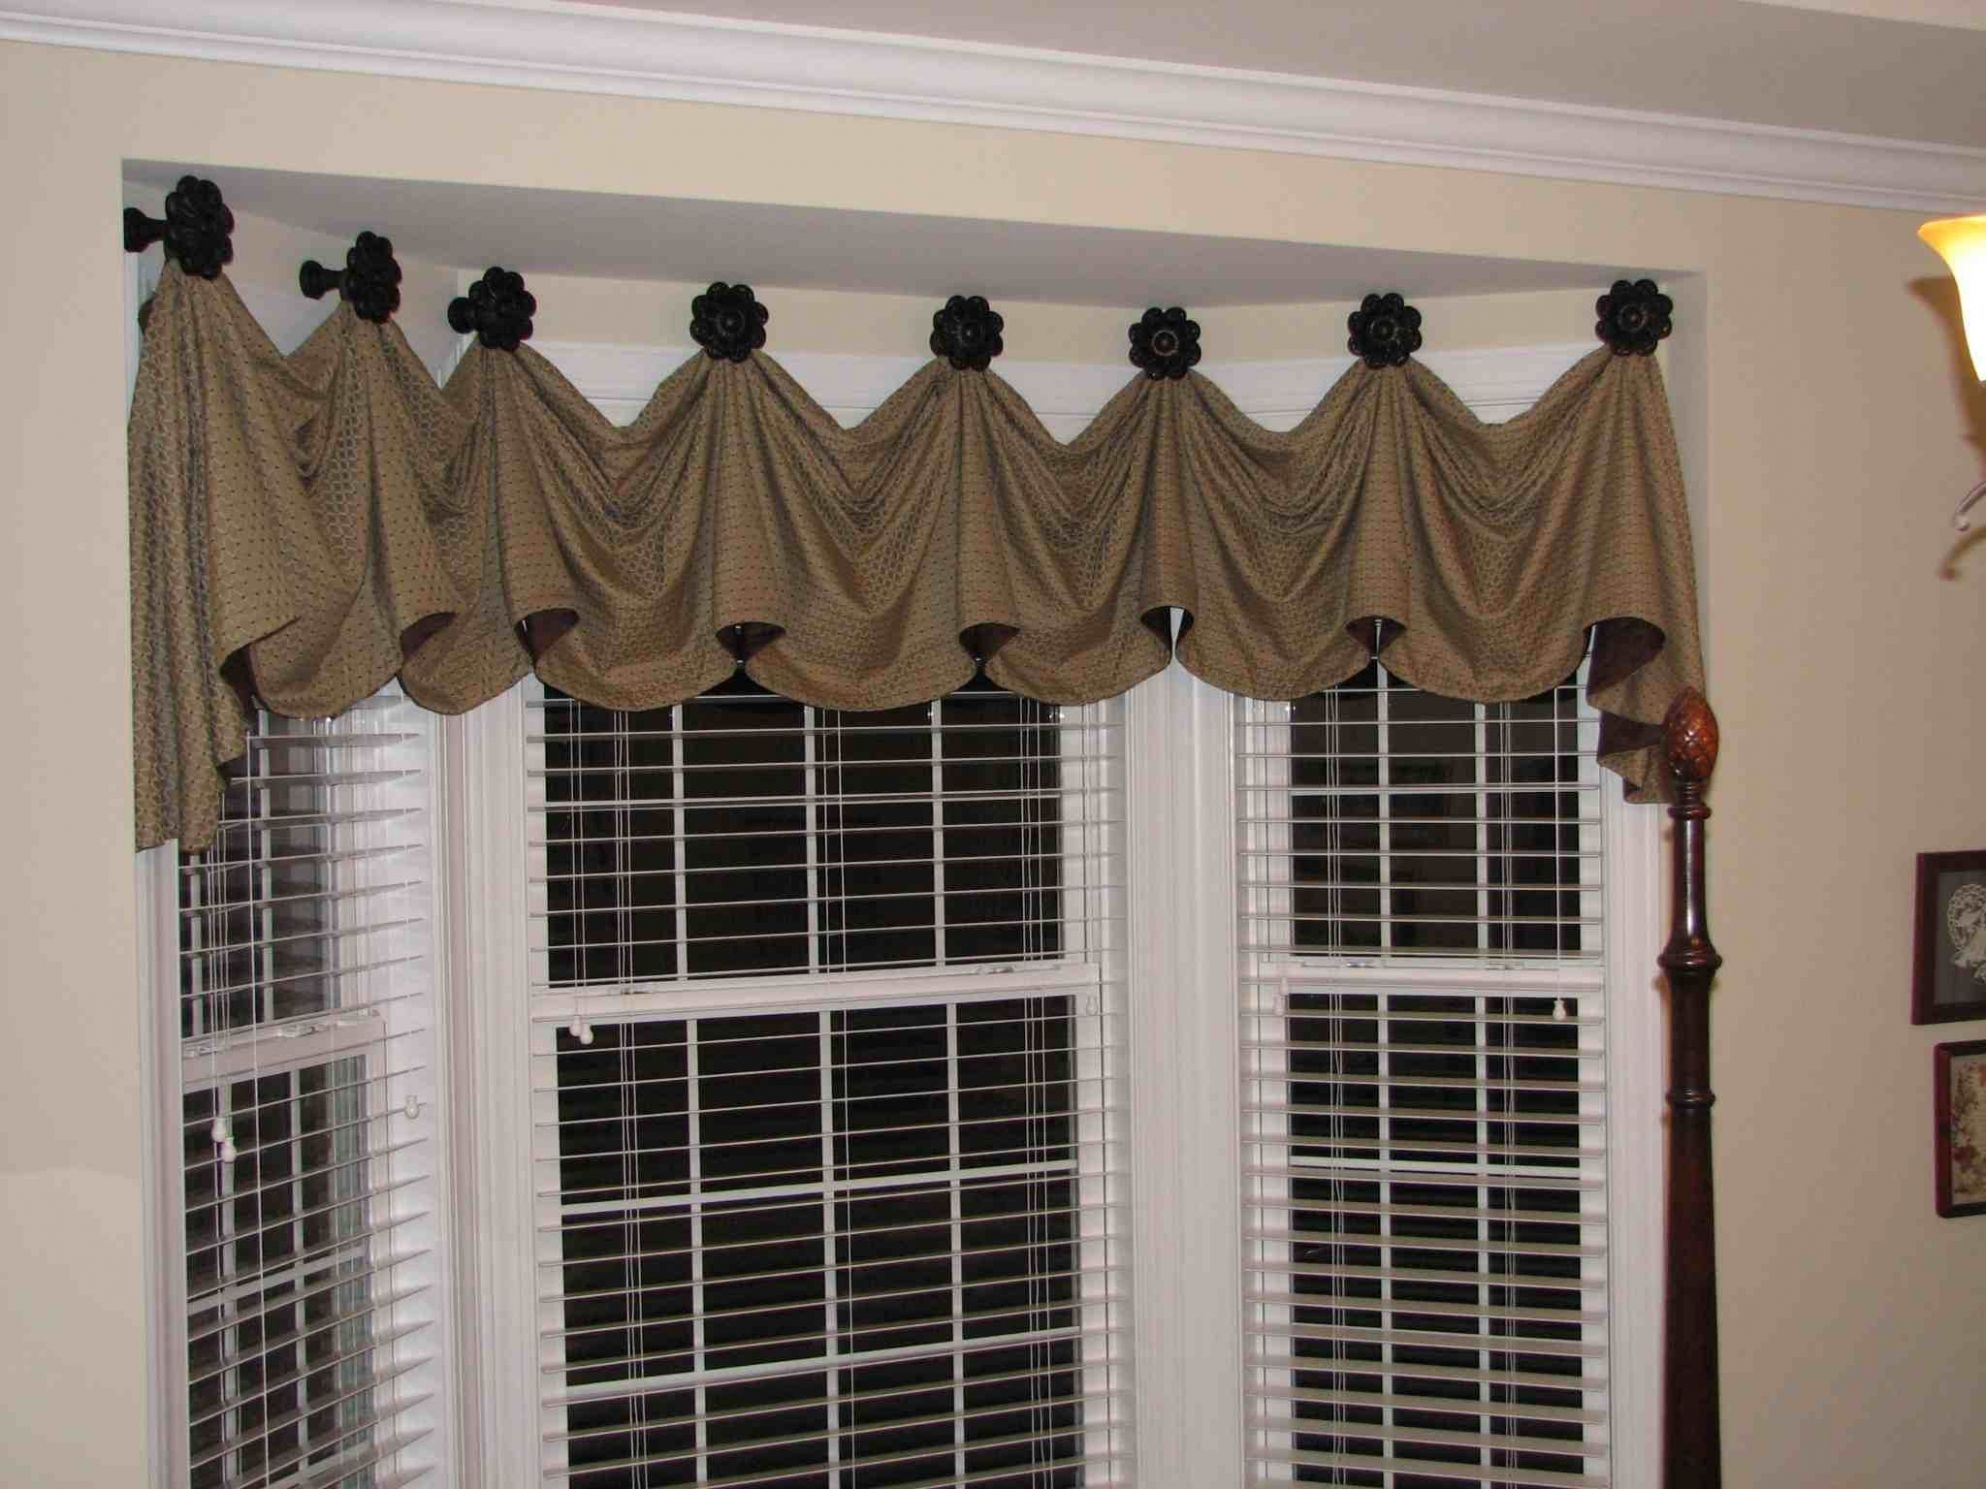 The Most Effective Solutions to Your Bay Window Curtains (With ...